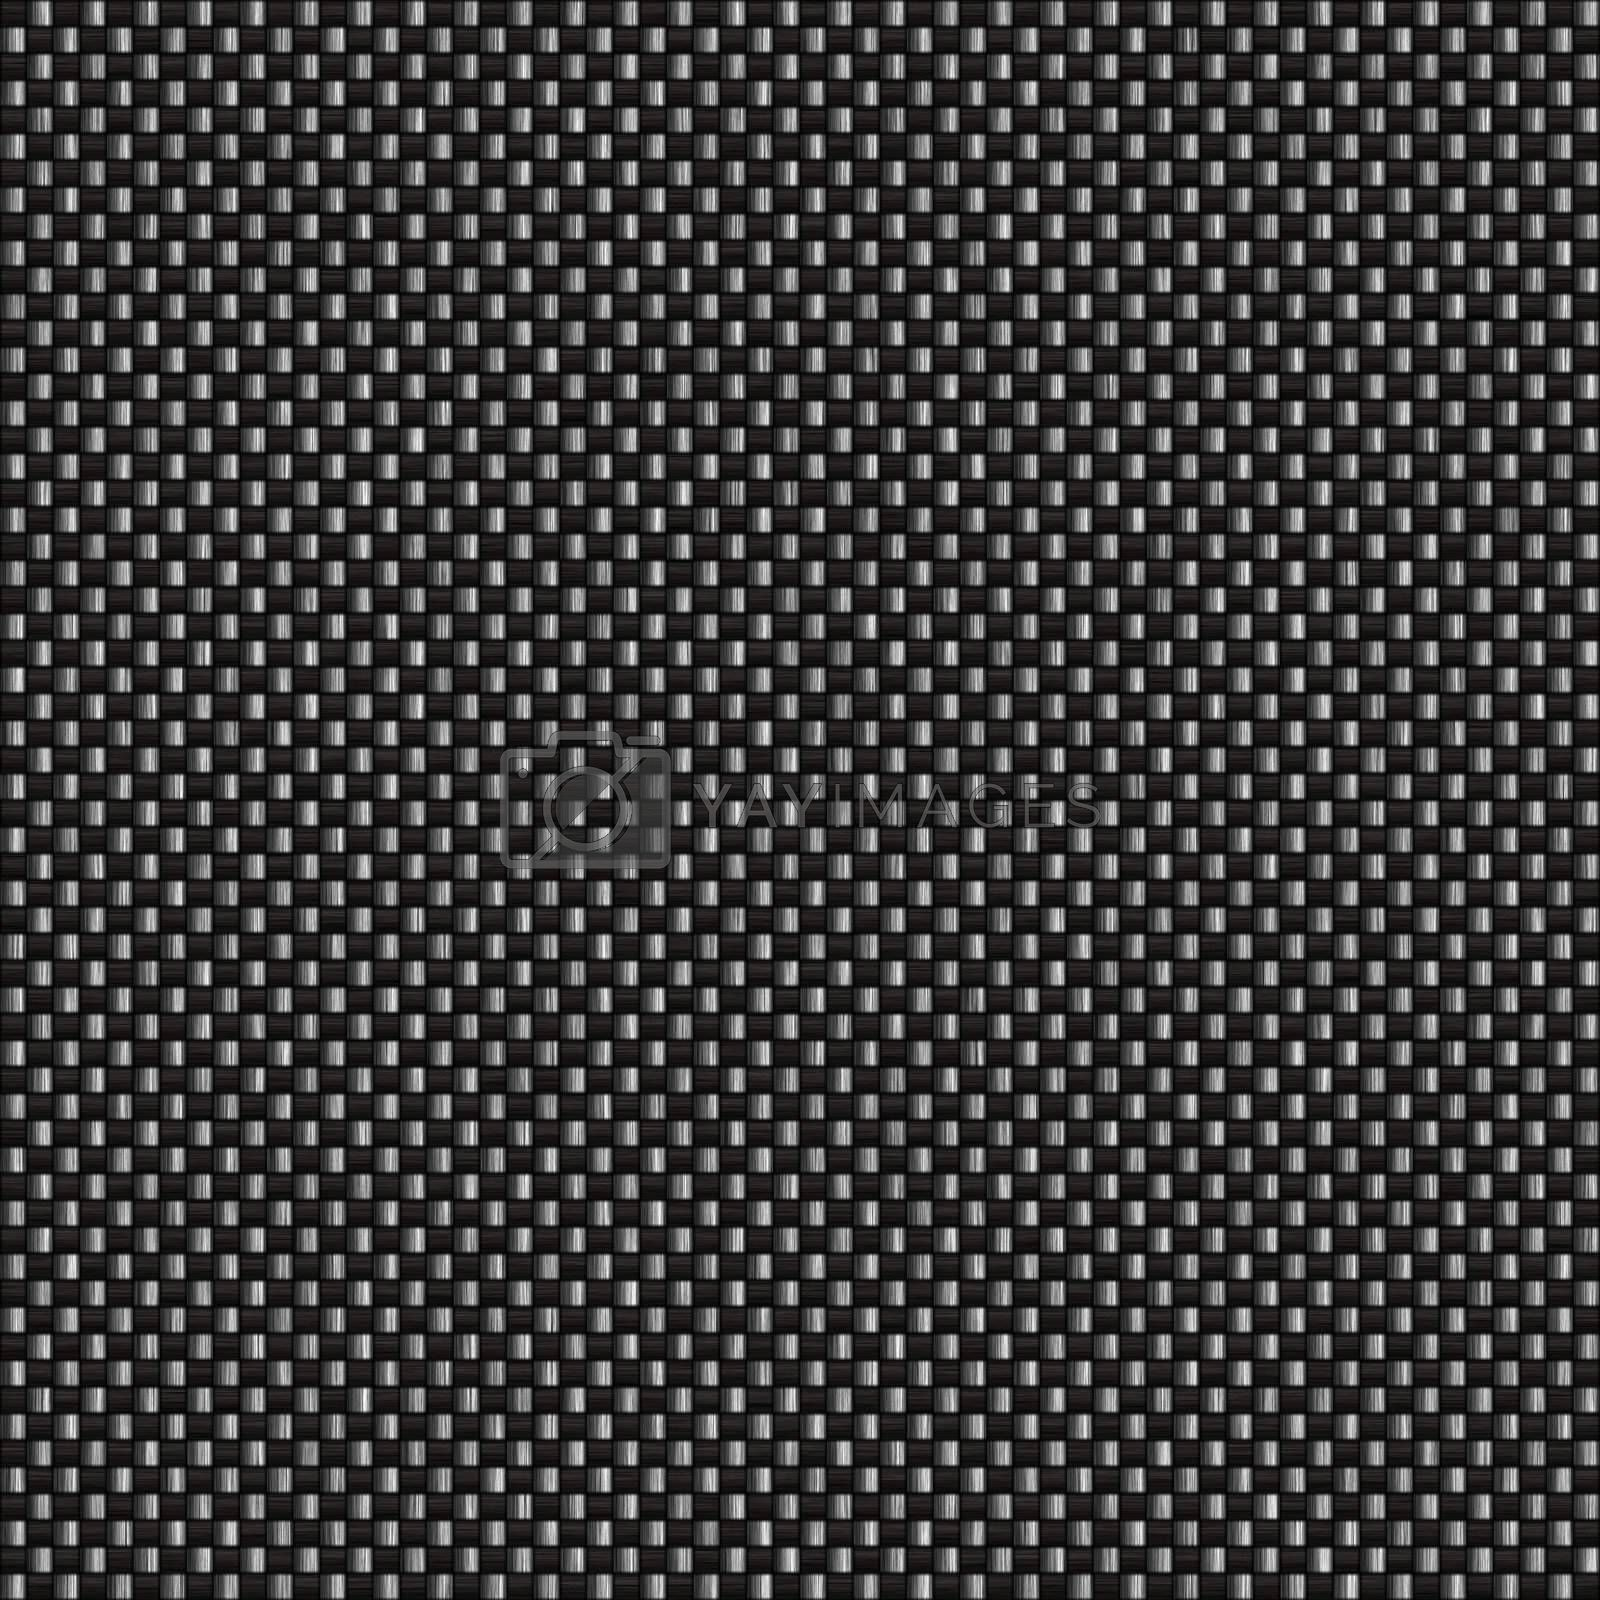 Black woven carbon fiber material that works great as a pattern.  This texture tiles seamlessly in any direction.